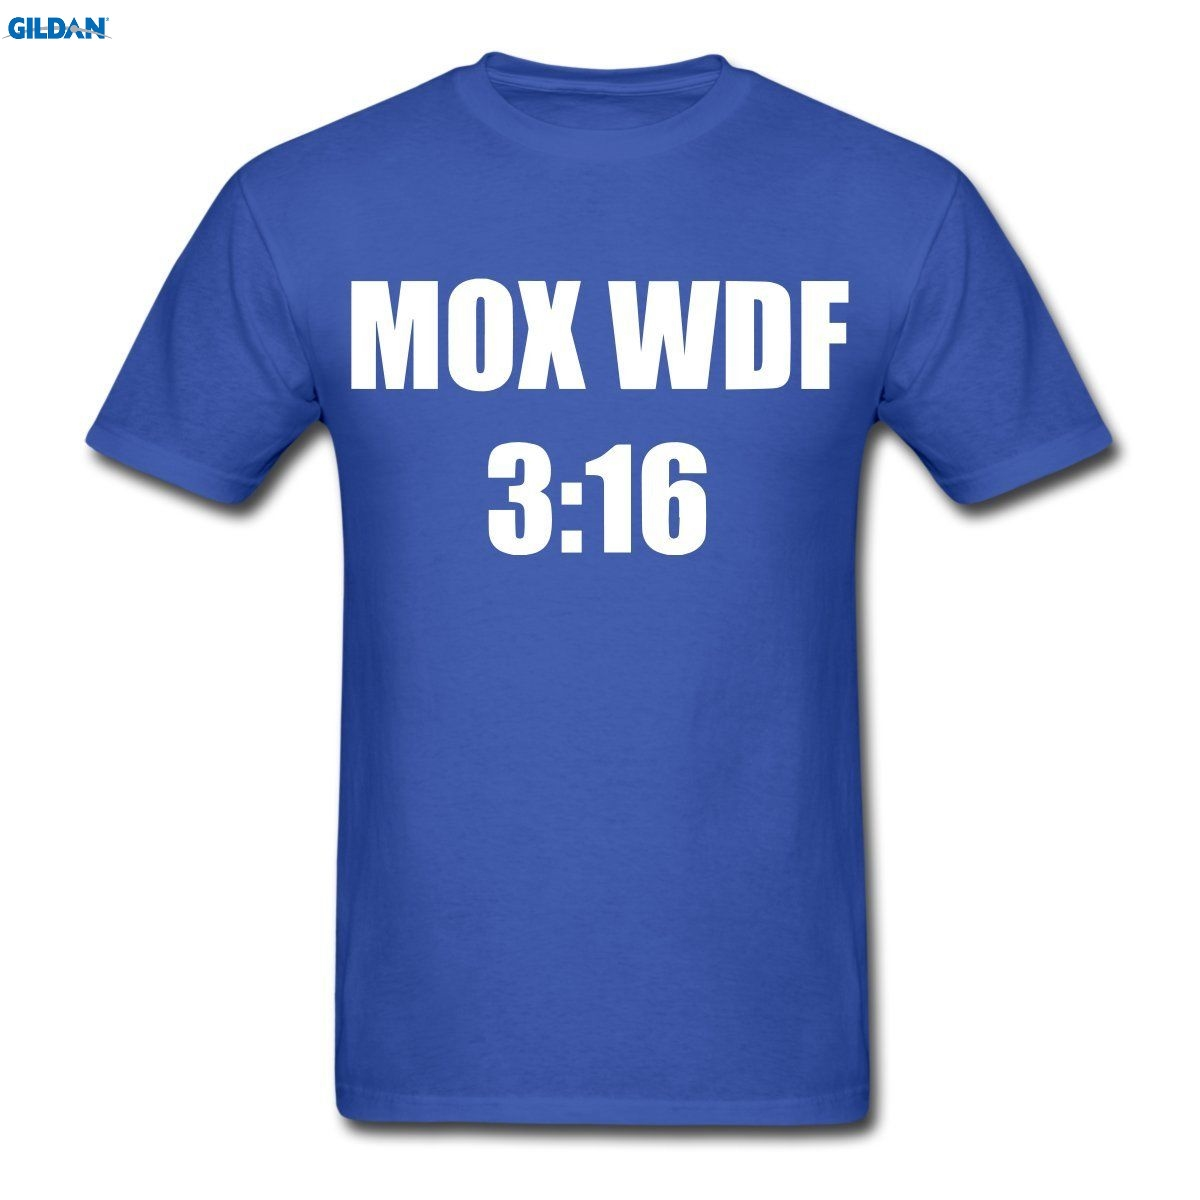 What da Faq Show MOX WDF 3:16 Men's T-Shirt Printed T Shirt Men'S Short Sleeve O